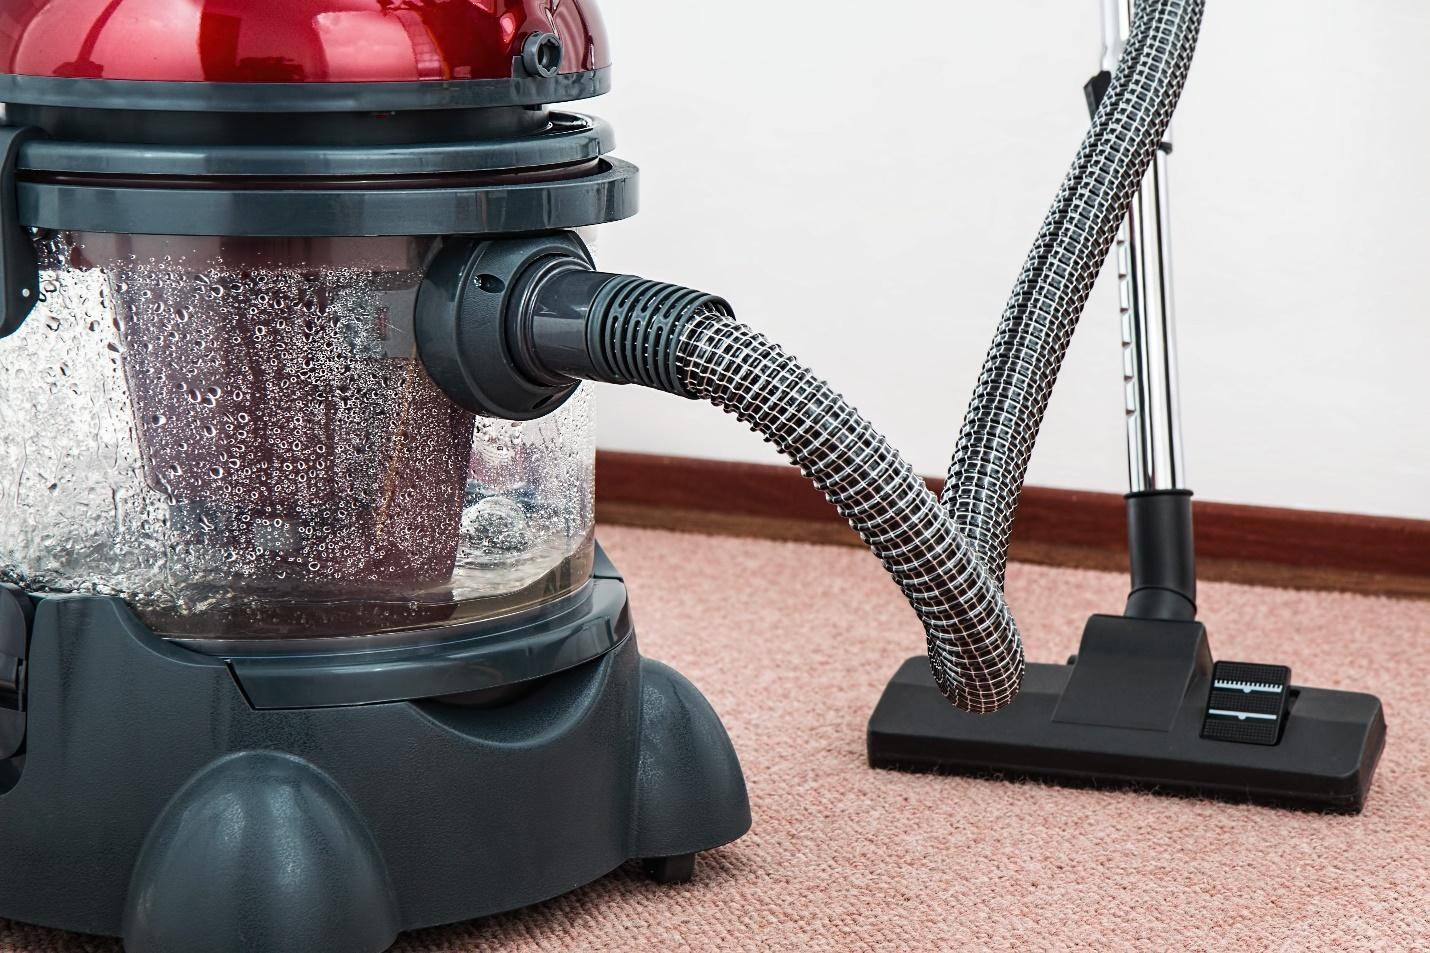 A-vacuum-cleaner-on-a-carpet